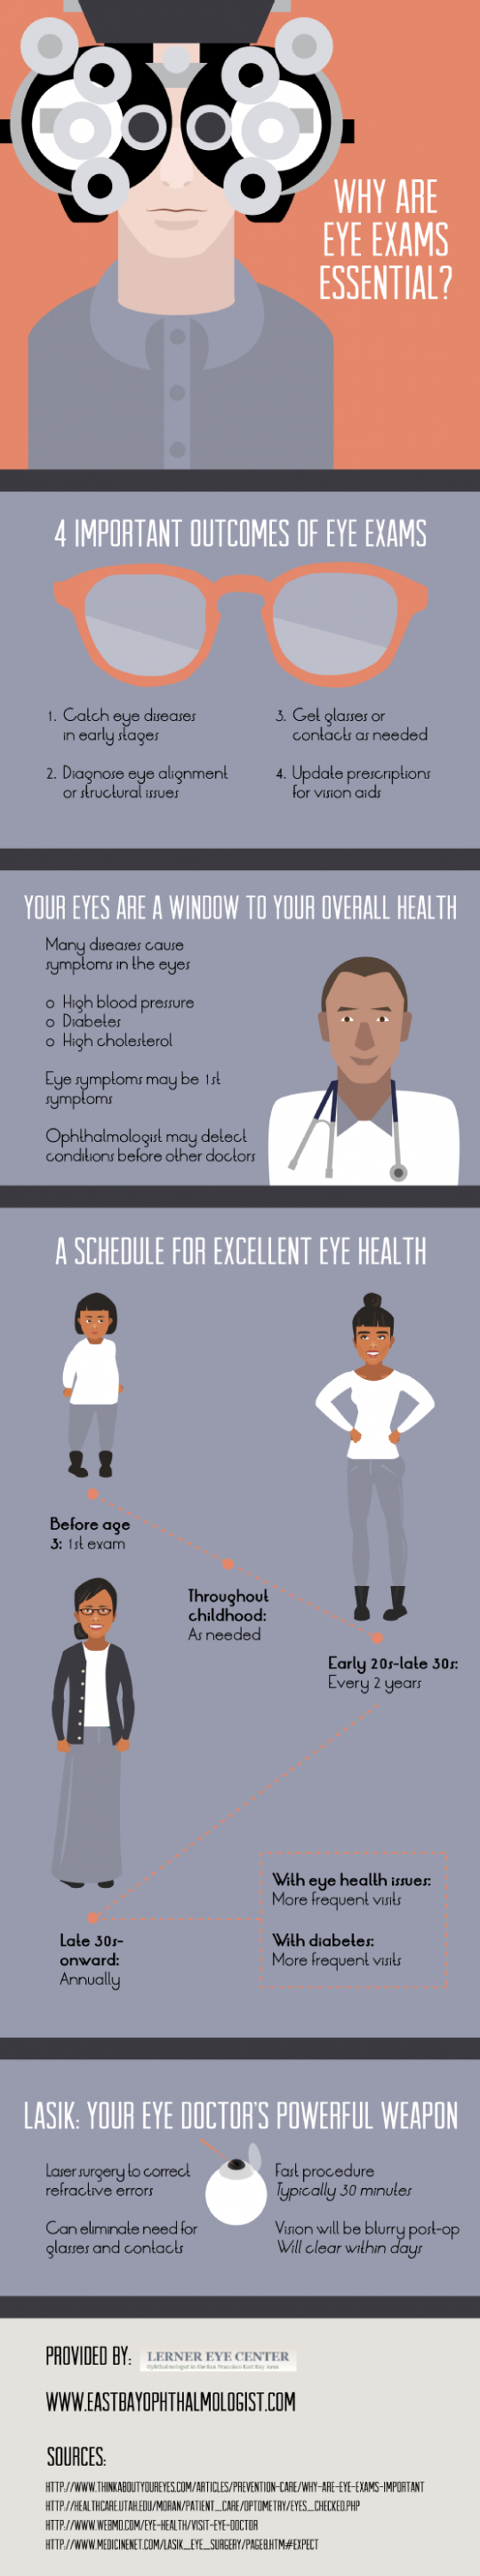 Why Are Eye Exams Essential?